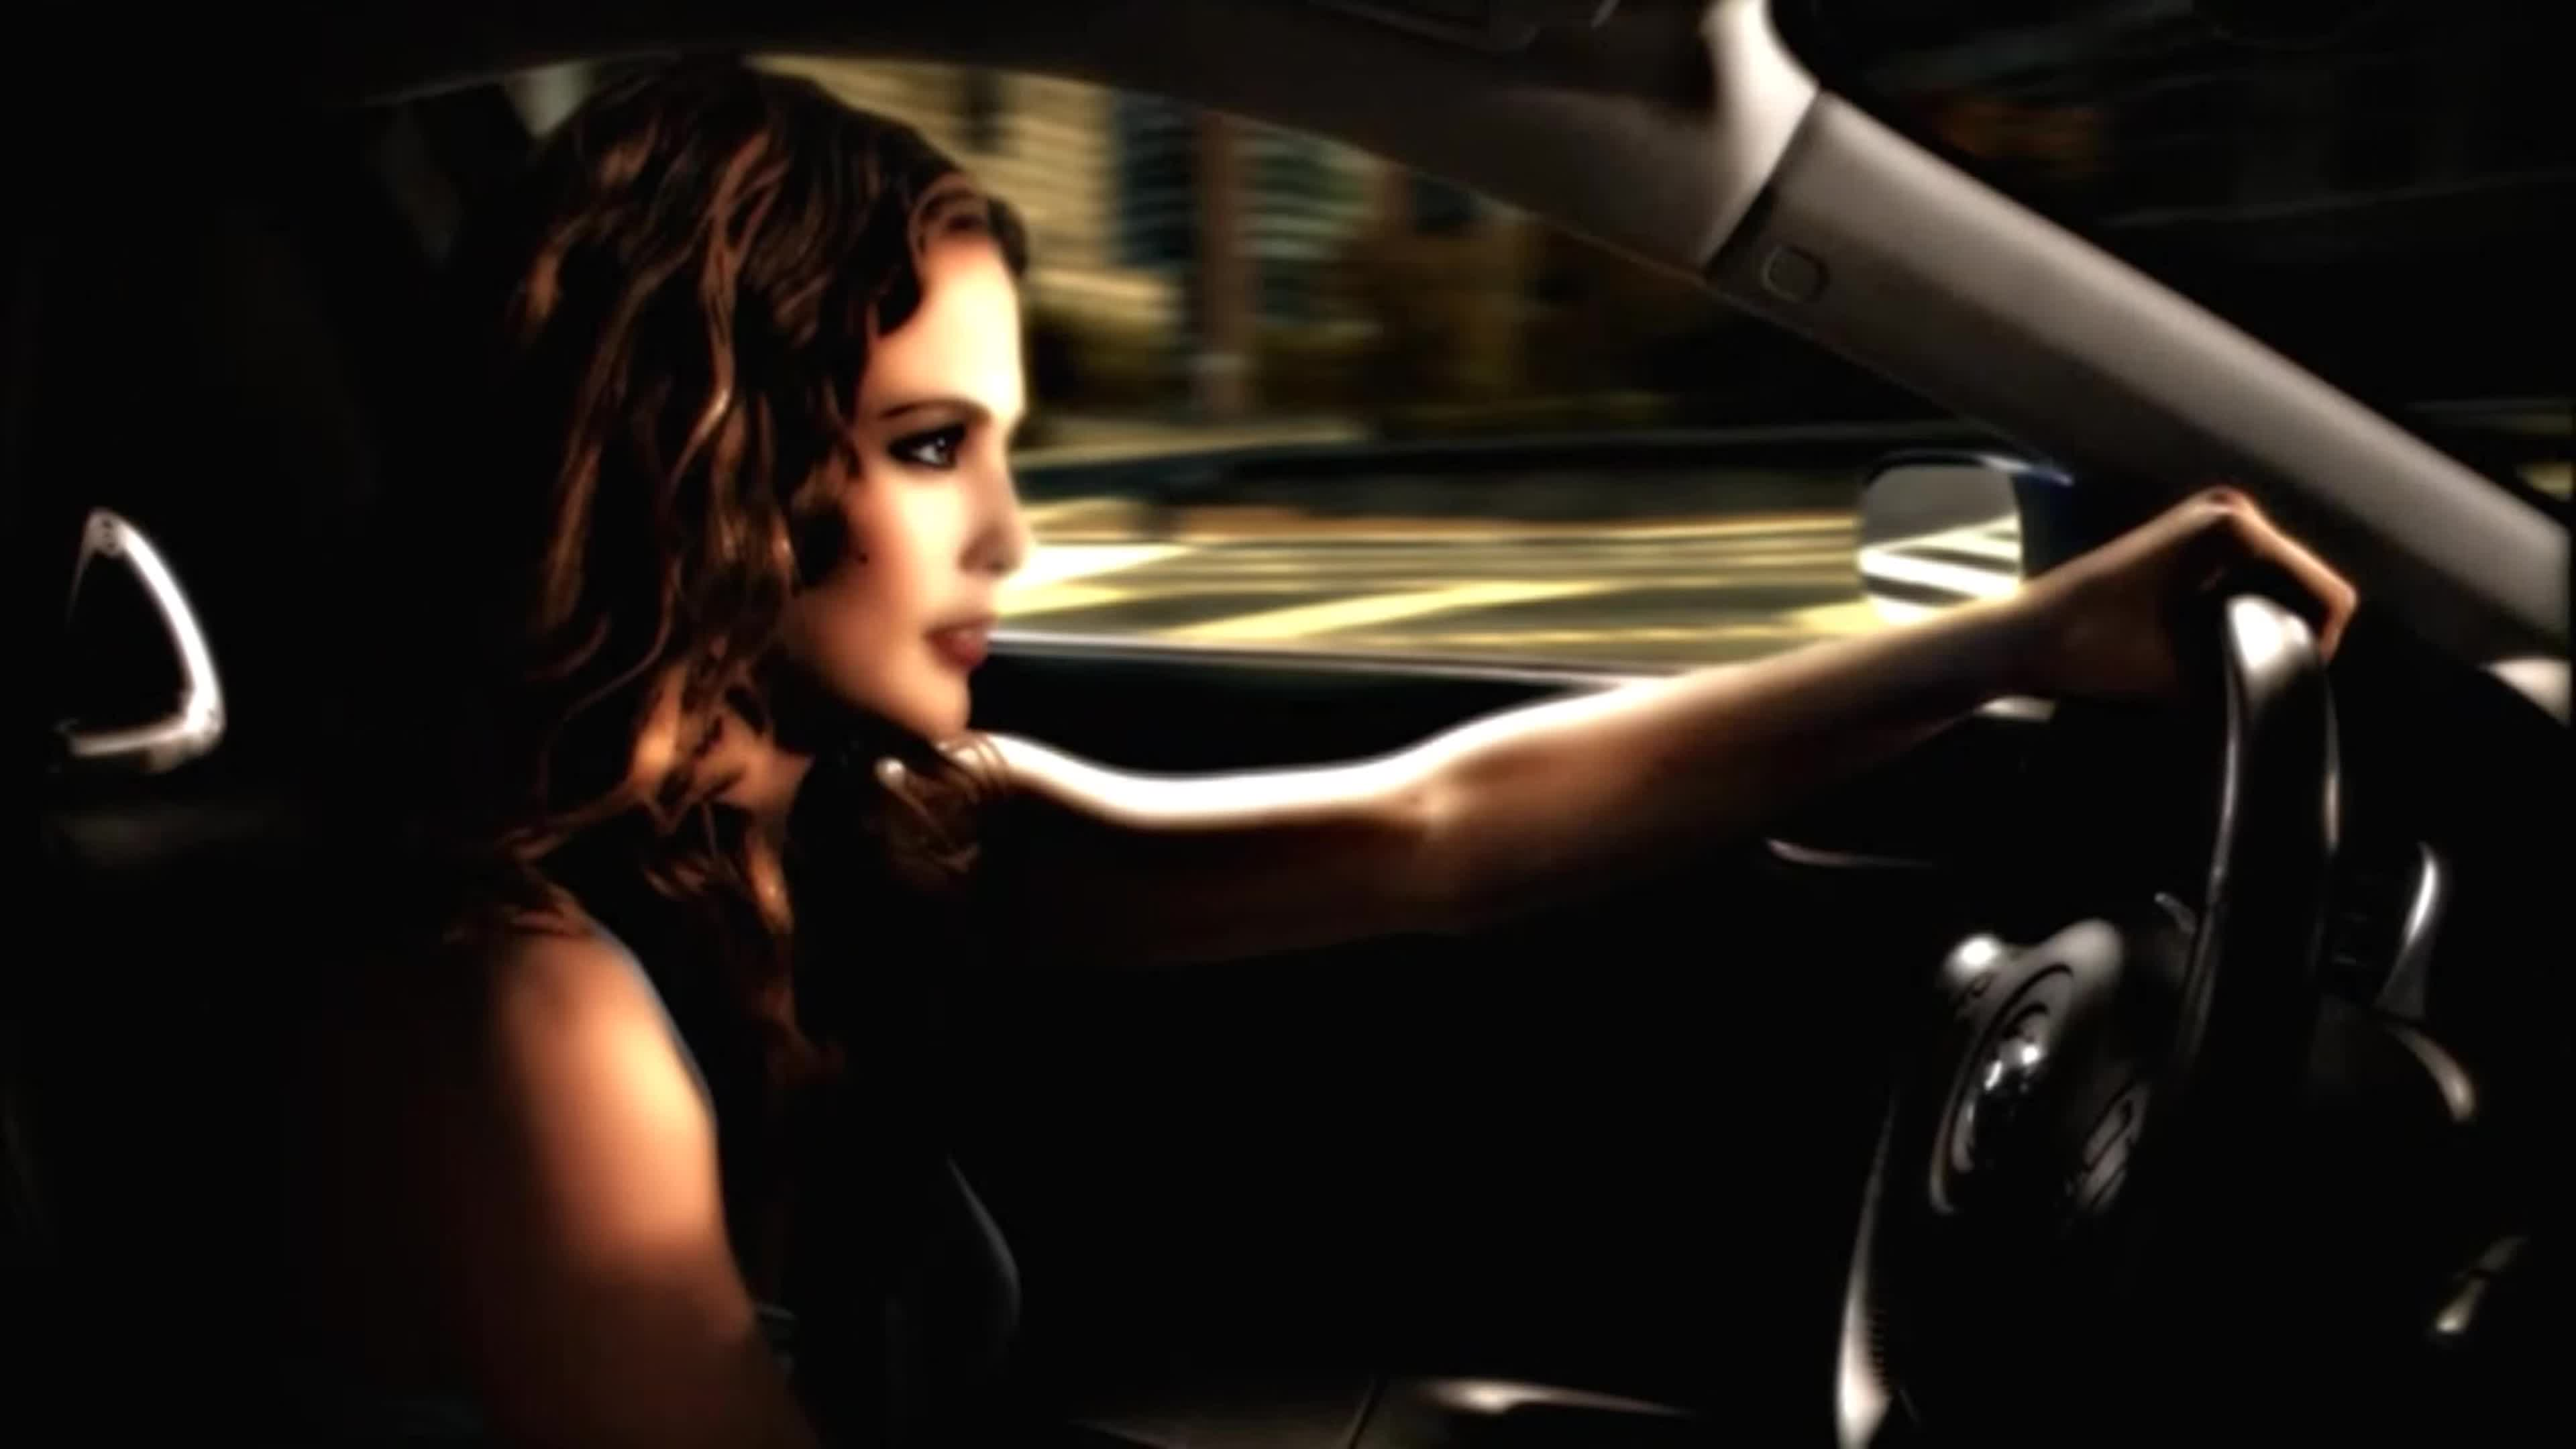 NFSMW, Need For Speed: Most Wanted Mia GIFs